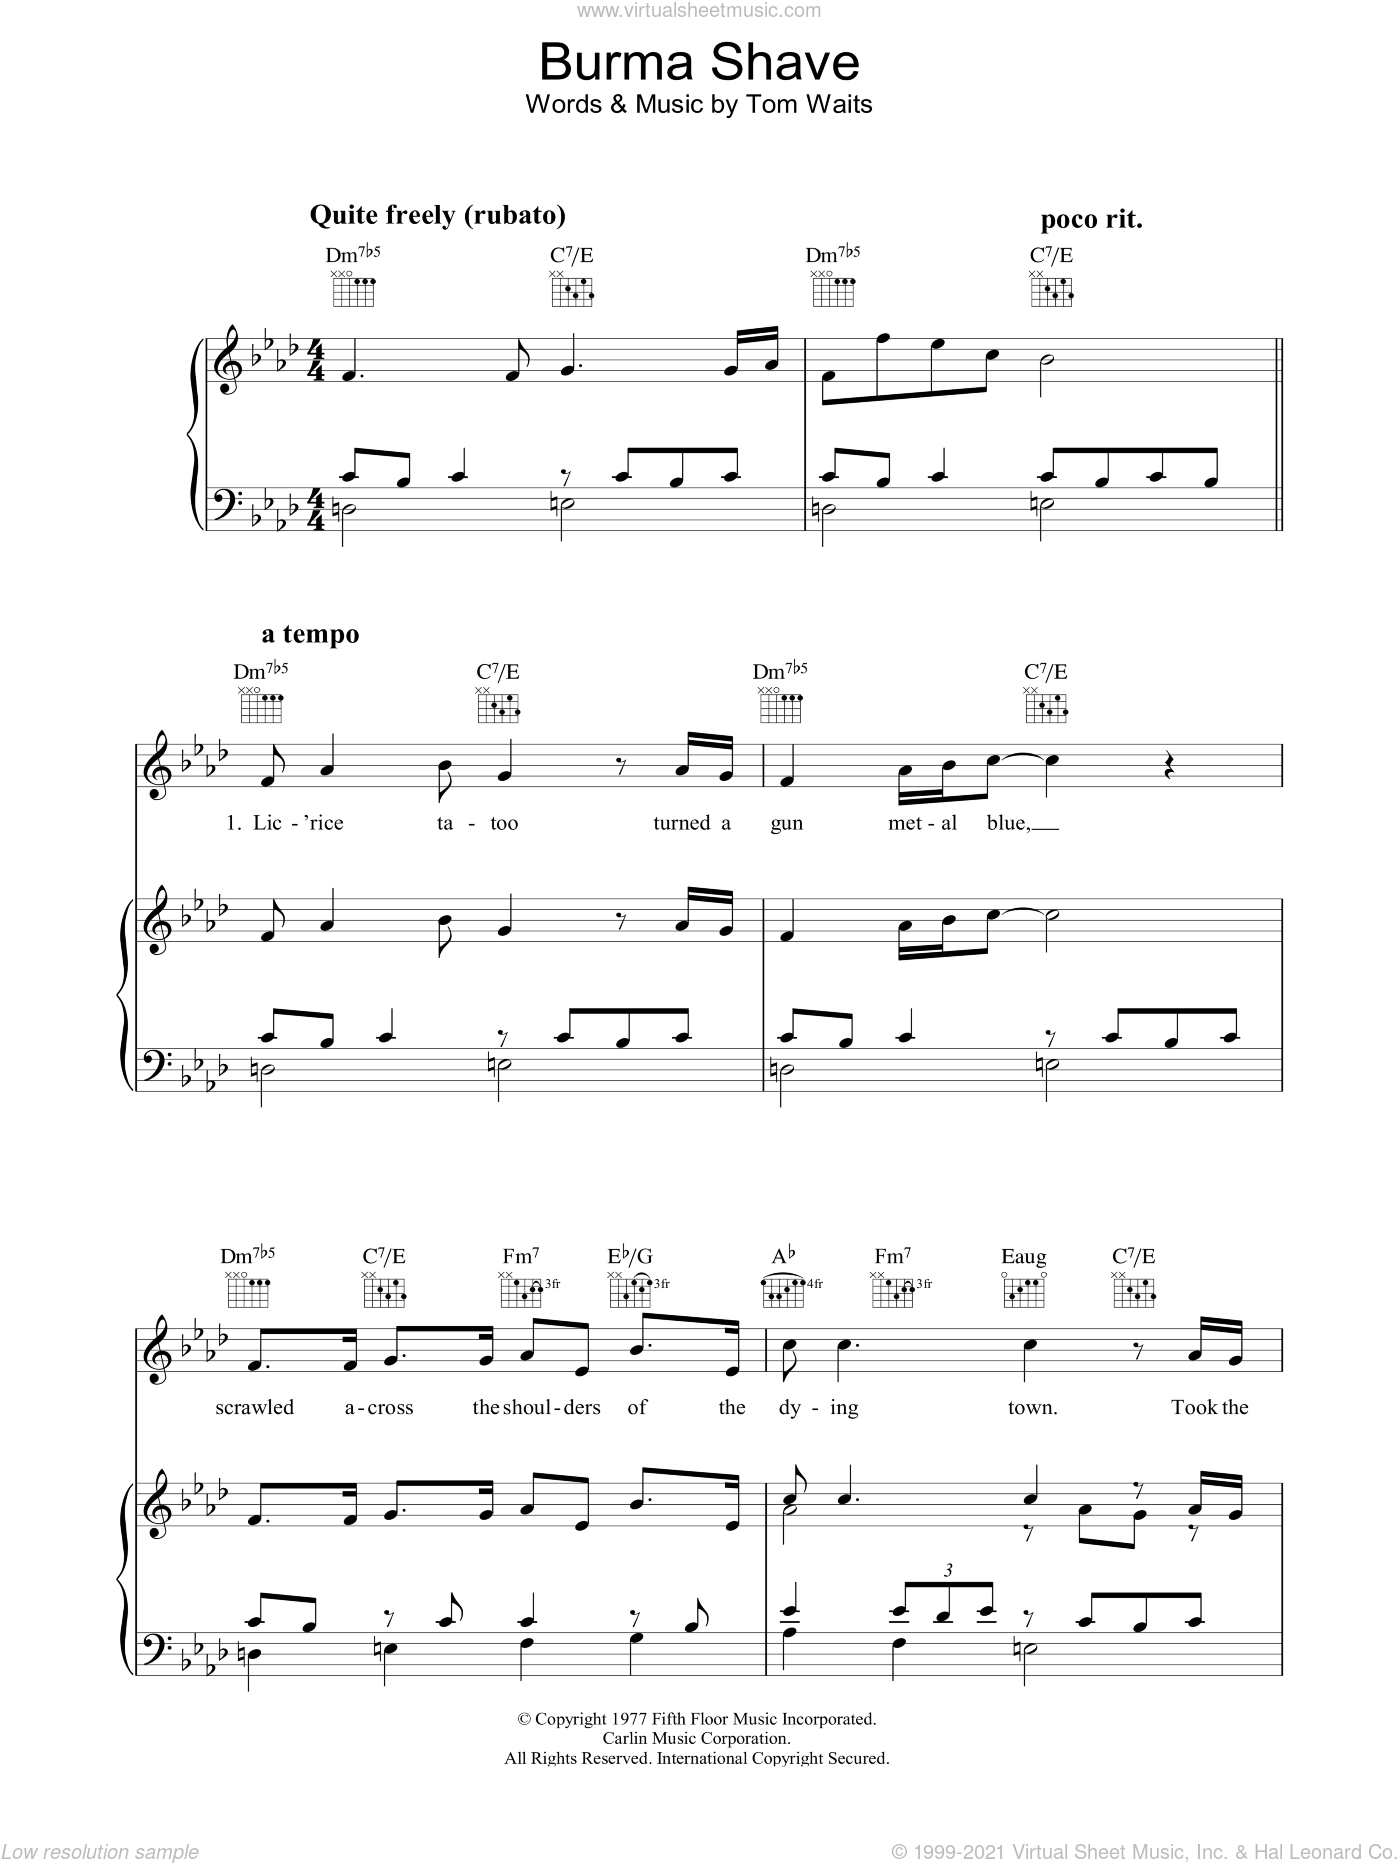 Burma Shave sheet music for voice, piano or guitar by Tom Waits, intermediate voice, piano or guitar. Score Image Preview.